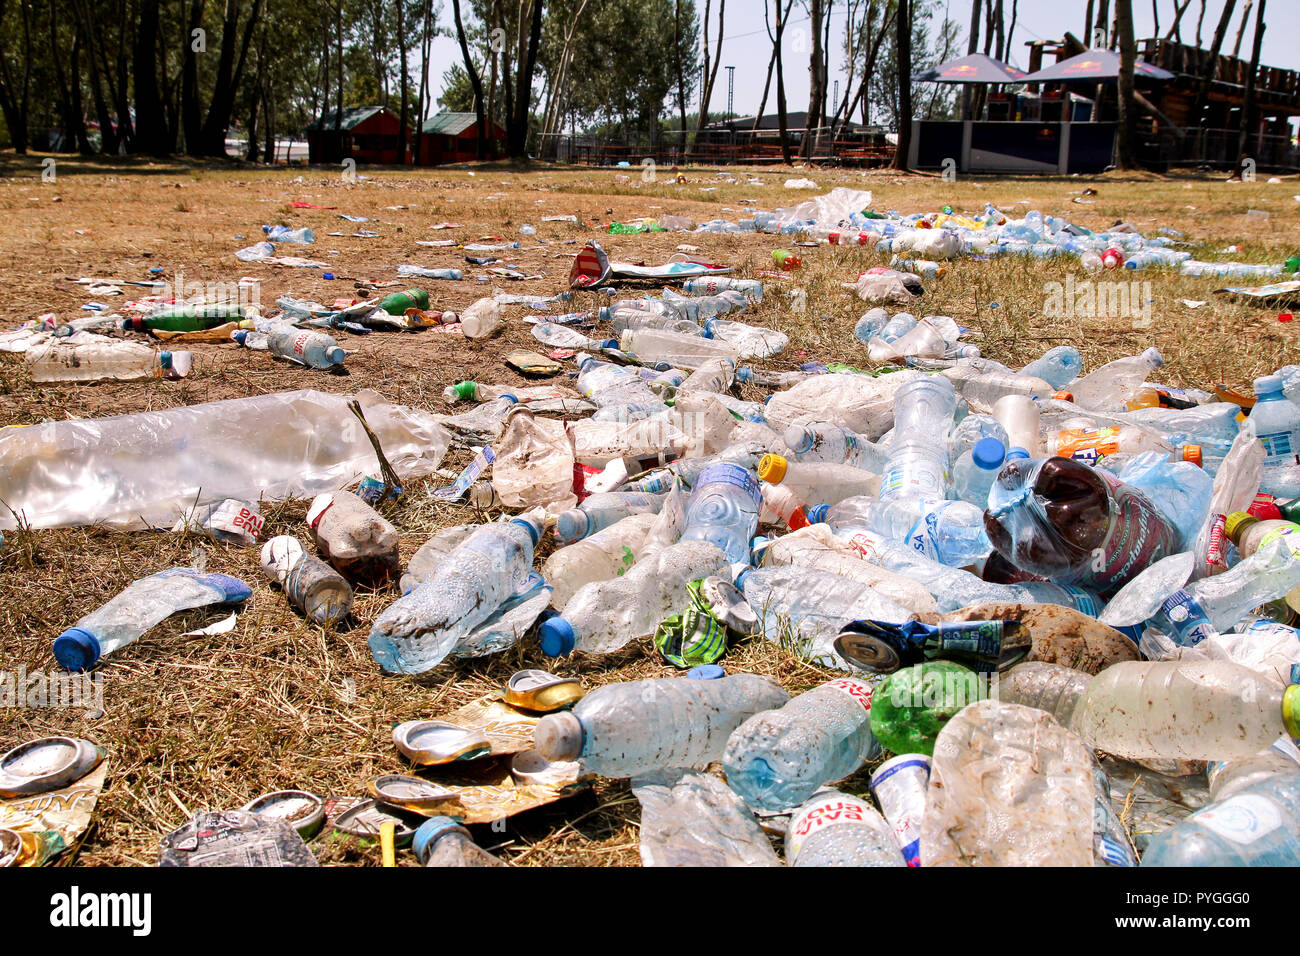 Belgrade, Serbia - June 25, 2017: Plastic pet bottles left on grass after an party, event. Used empty bottles thrown away on the ground after an open. Stock Photo